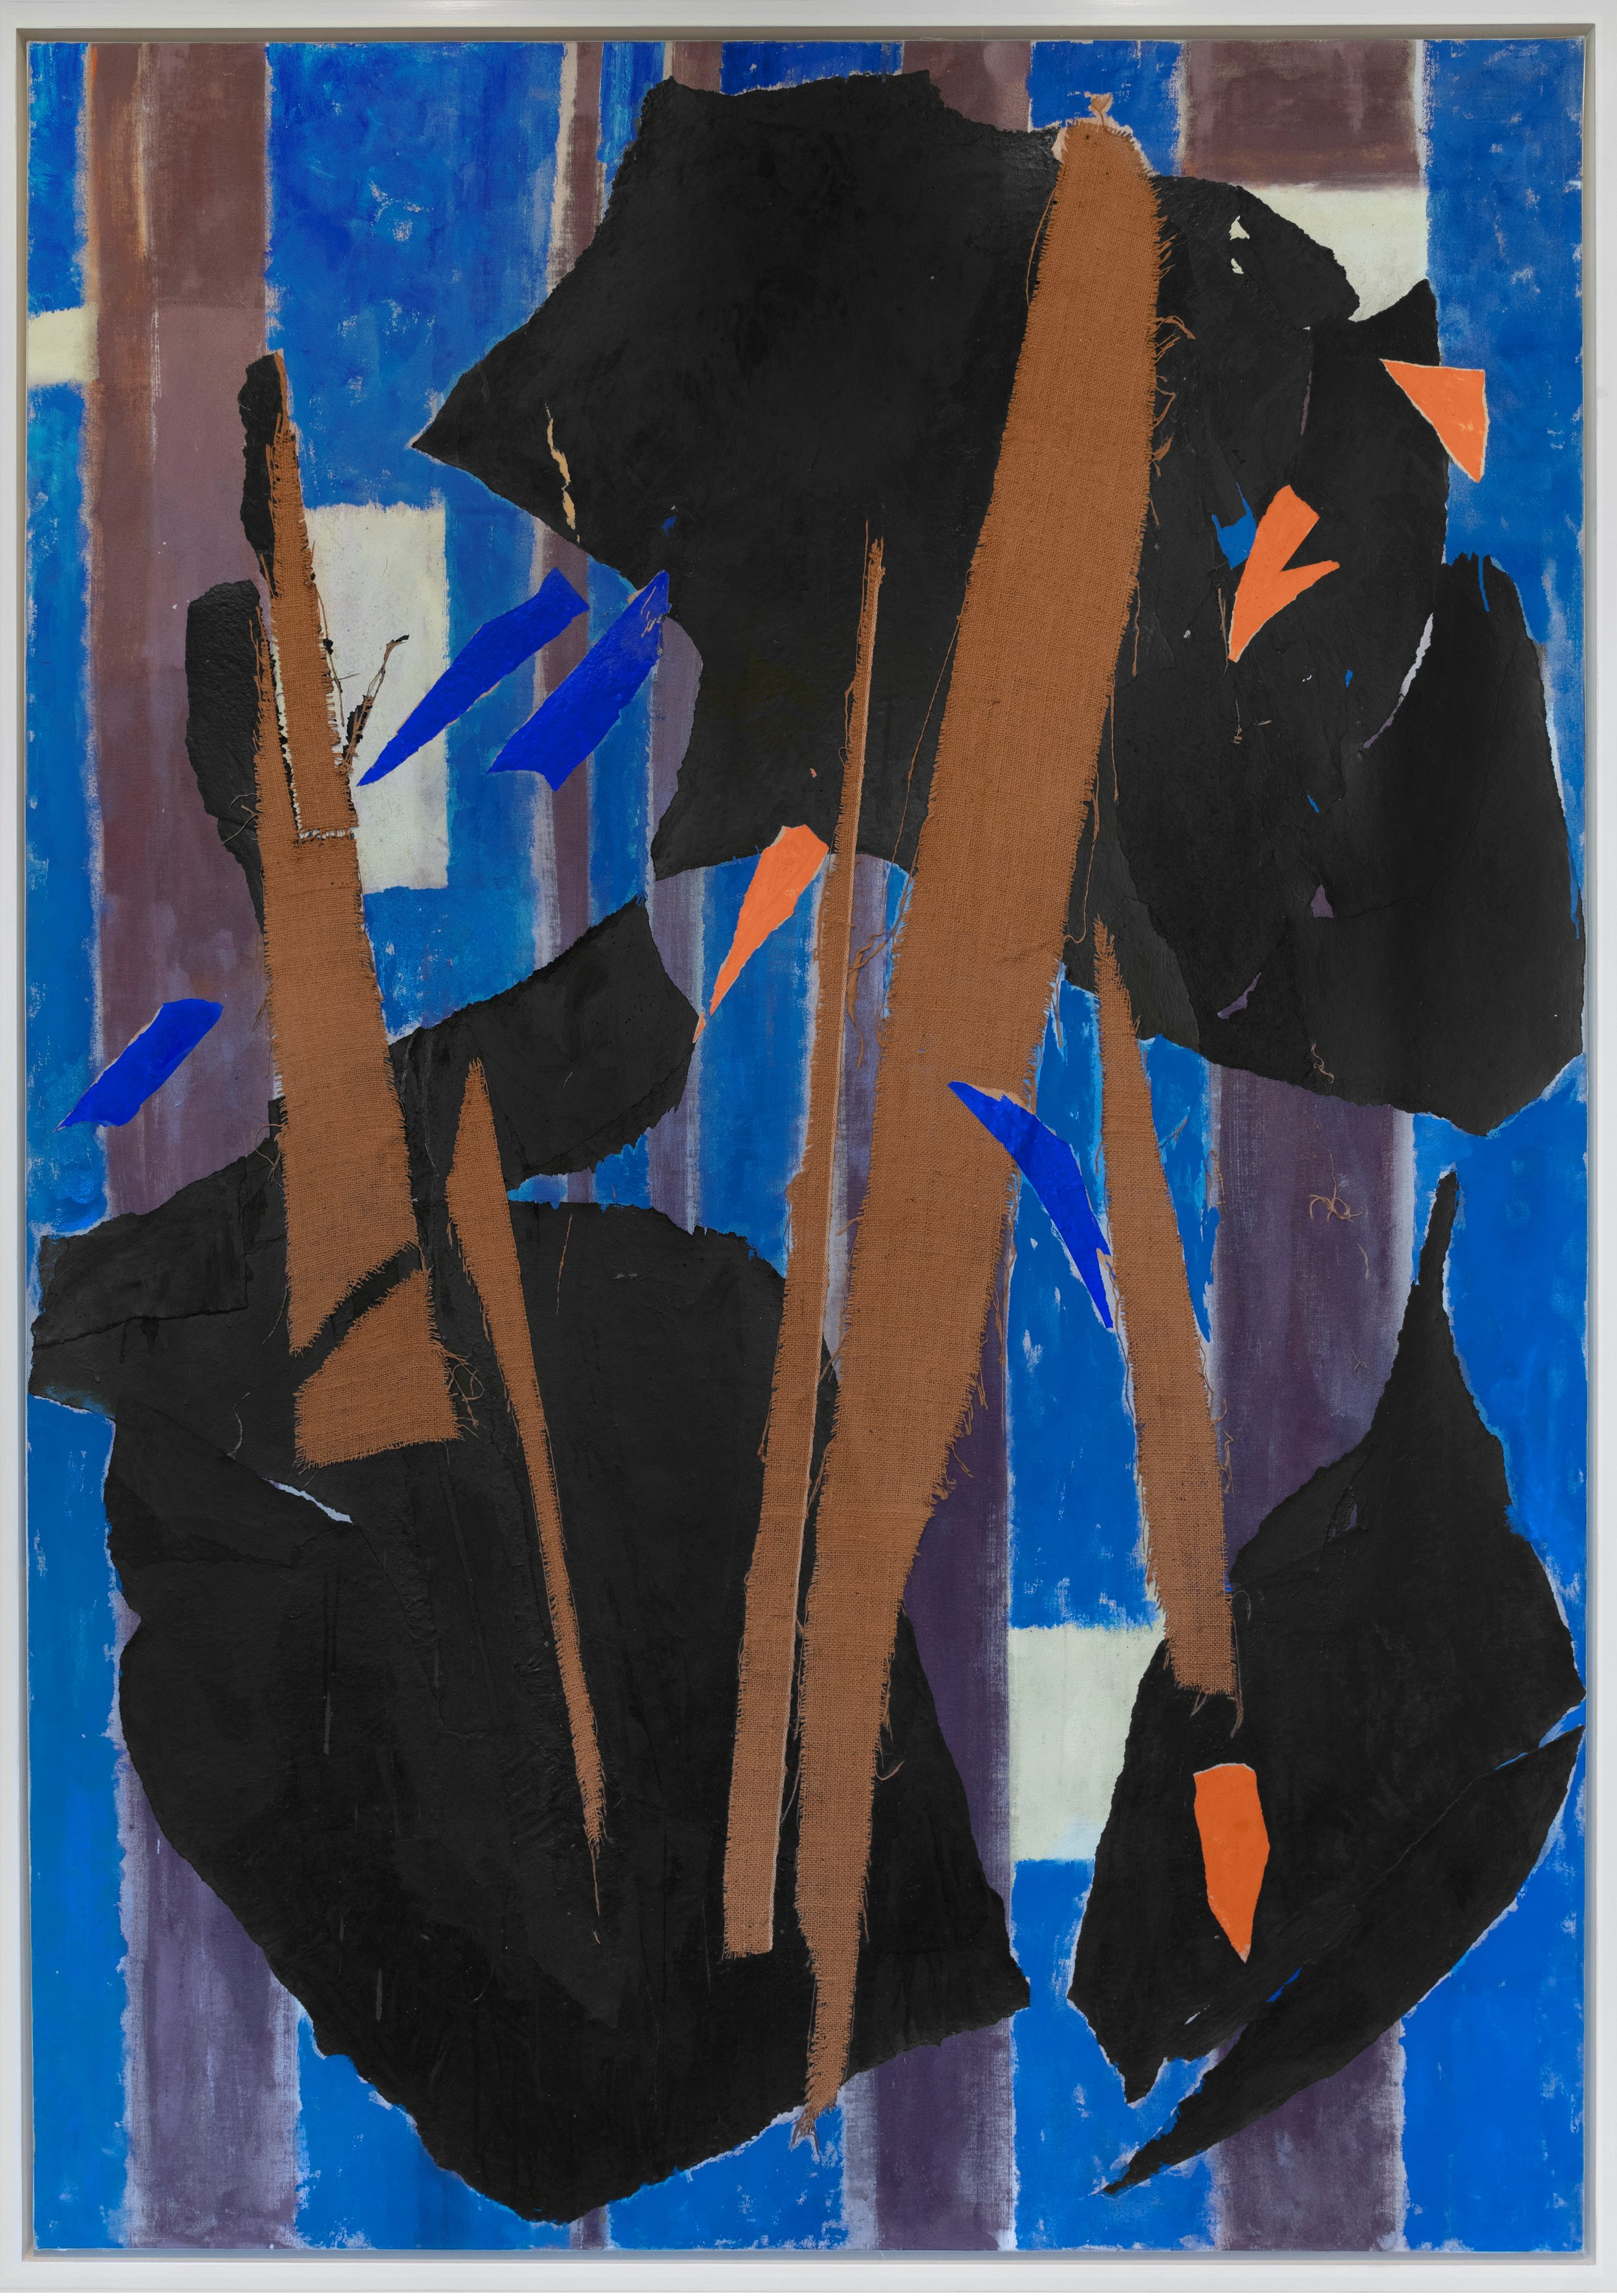 Lee Krasner  Blue Level , 1955 Private Collection. © The Pollock-Krasner Foundation. Photograph by Diego Flores